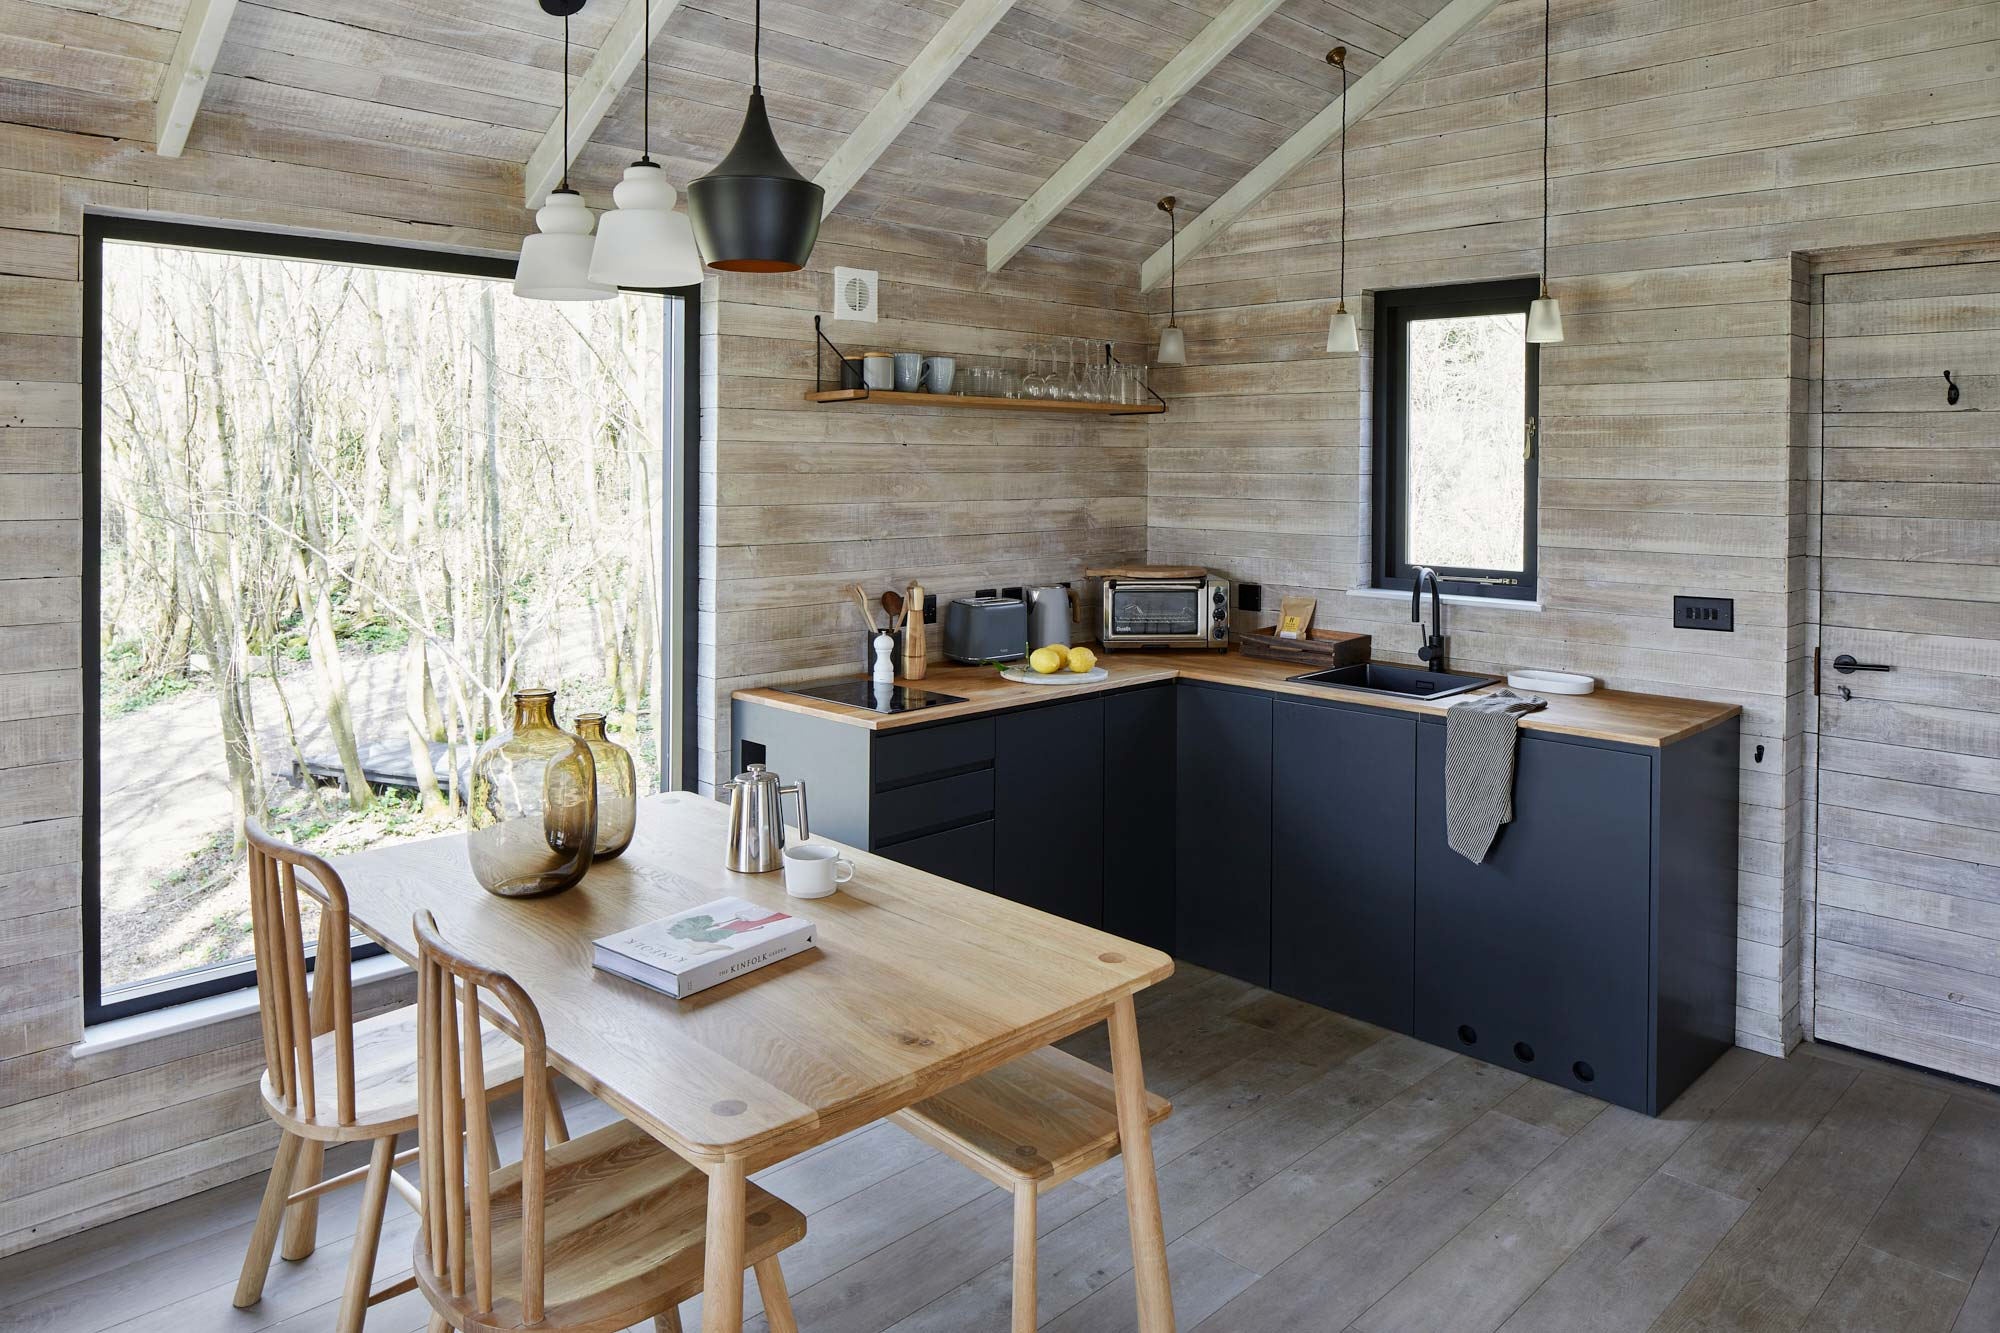 Reclaimed cladded treehouse kitchen